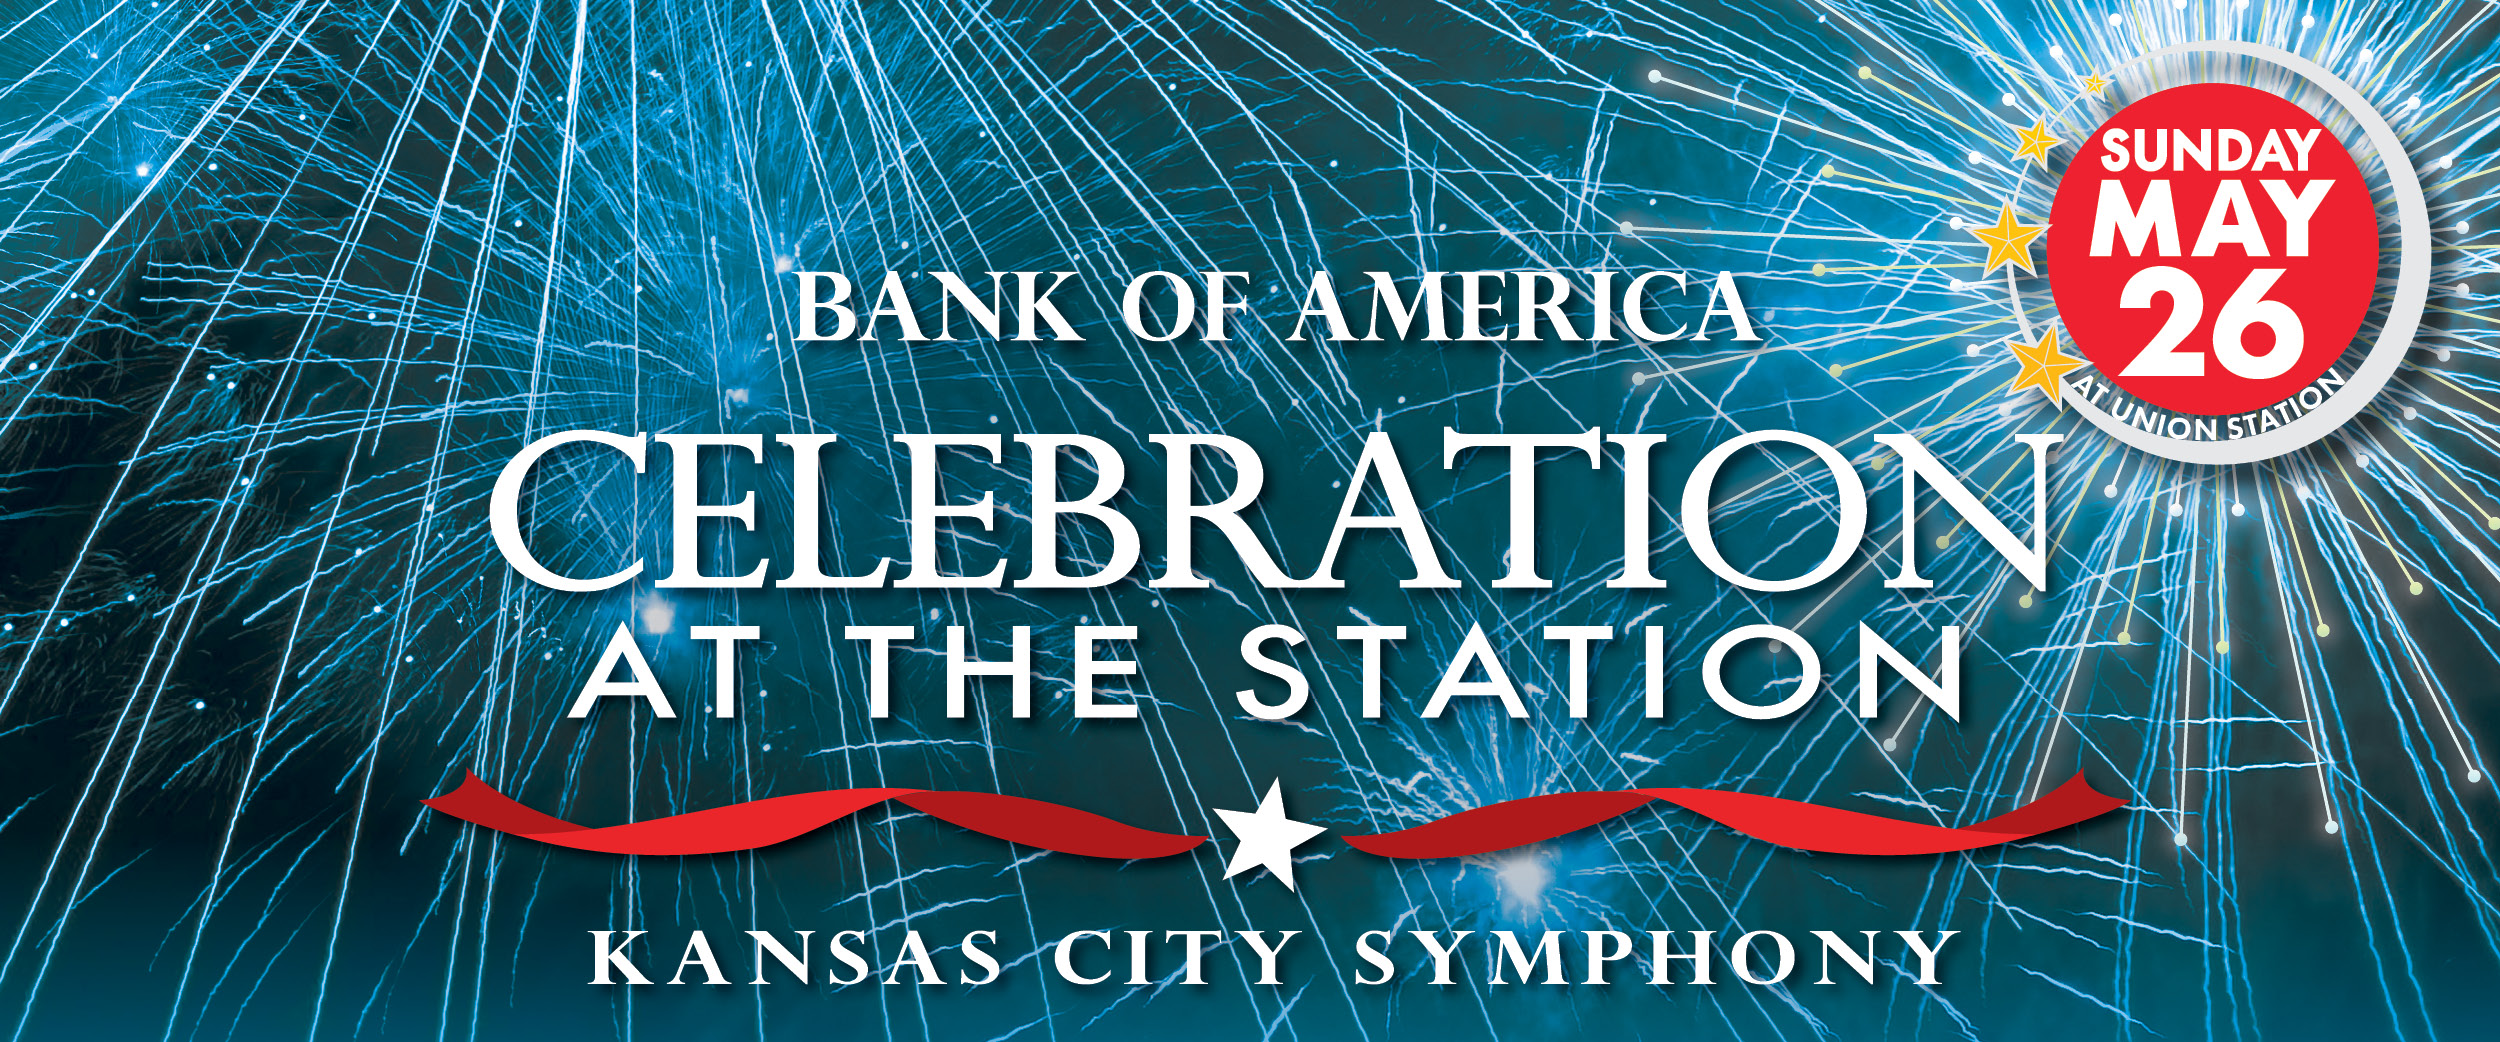 Bank of America Celebration at the Station header